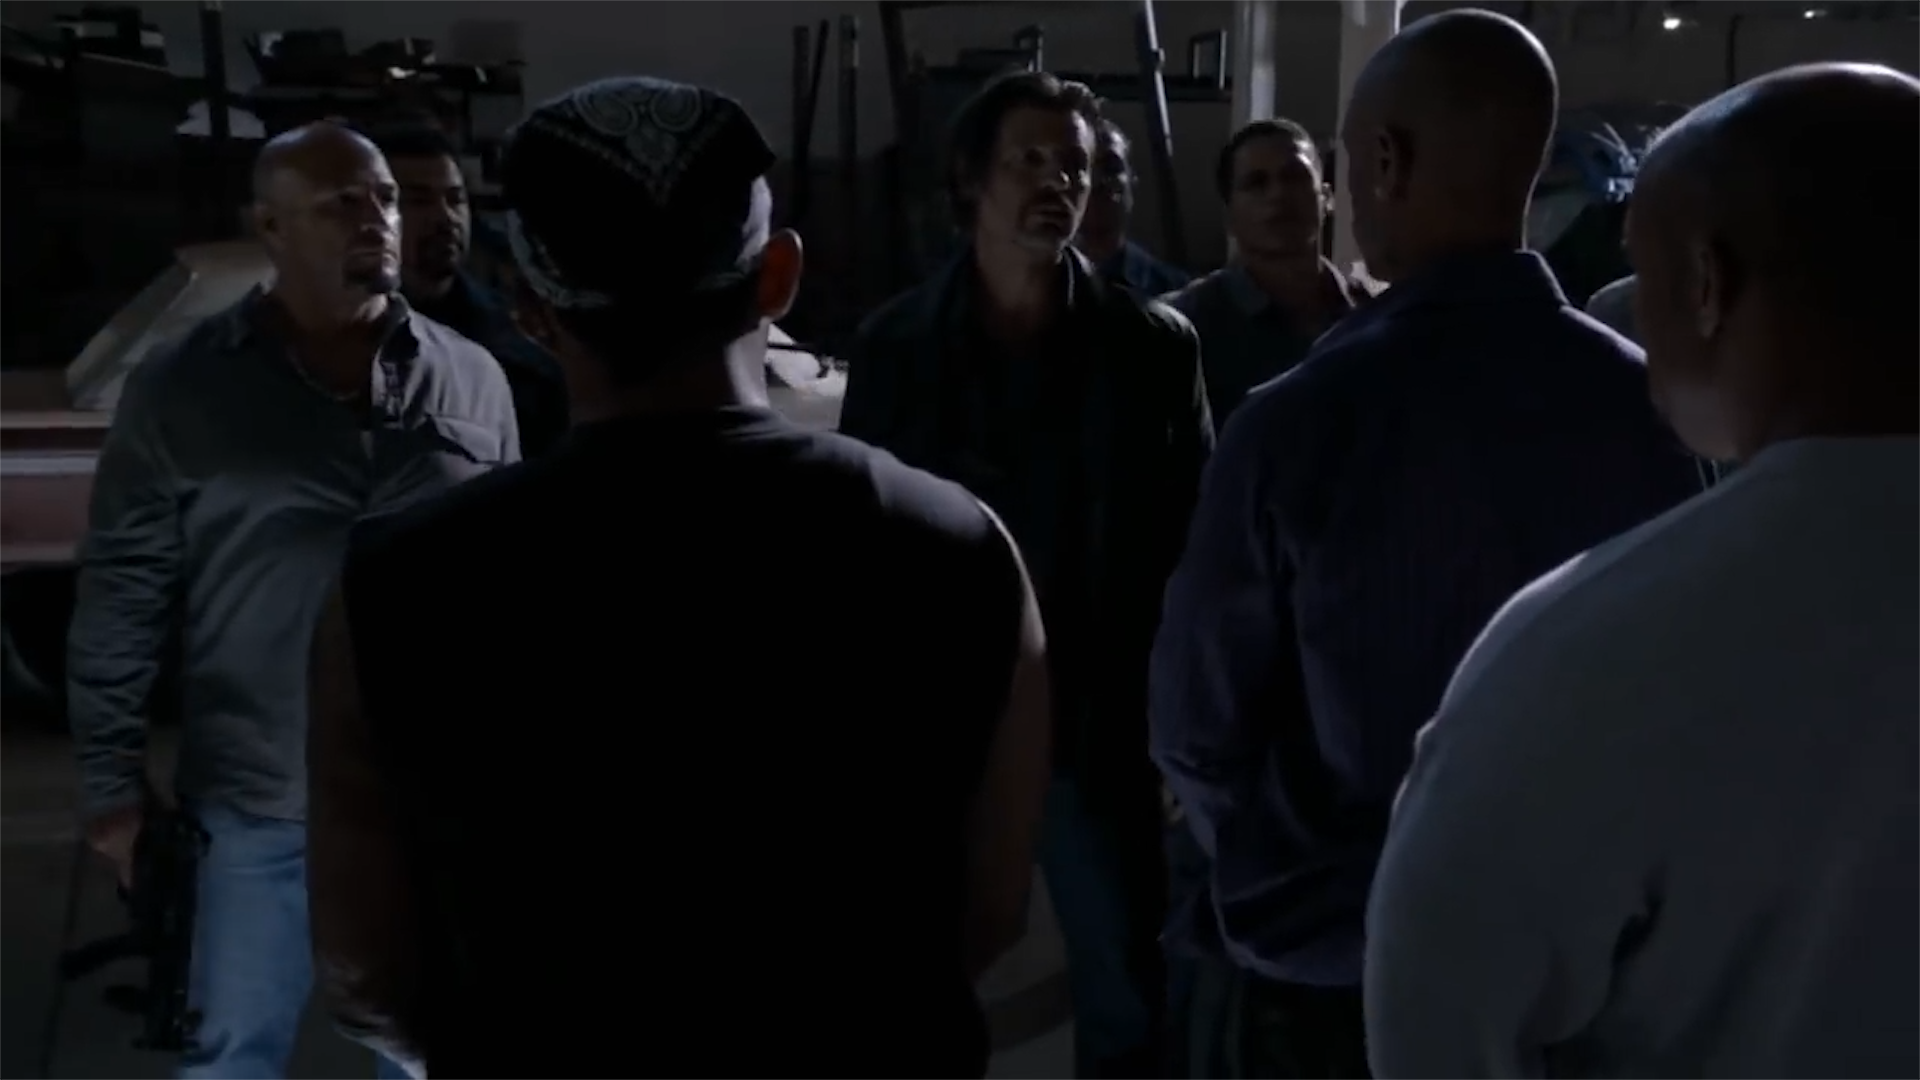 'Sons of Anarchy' warehouse gunfight